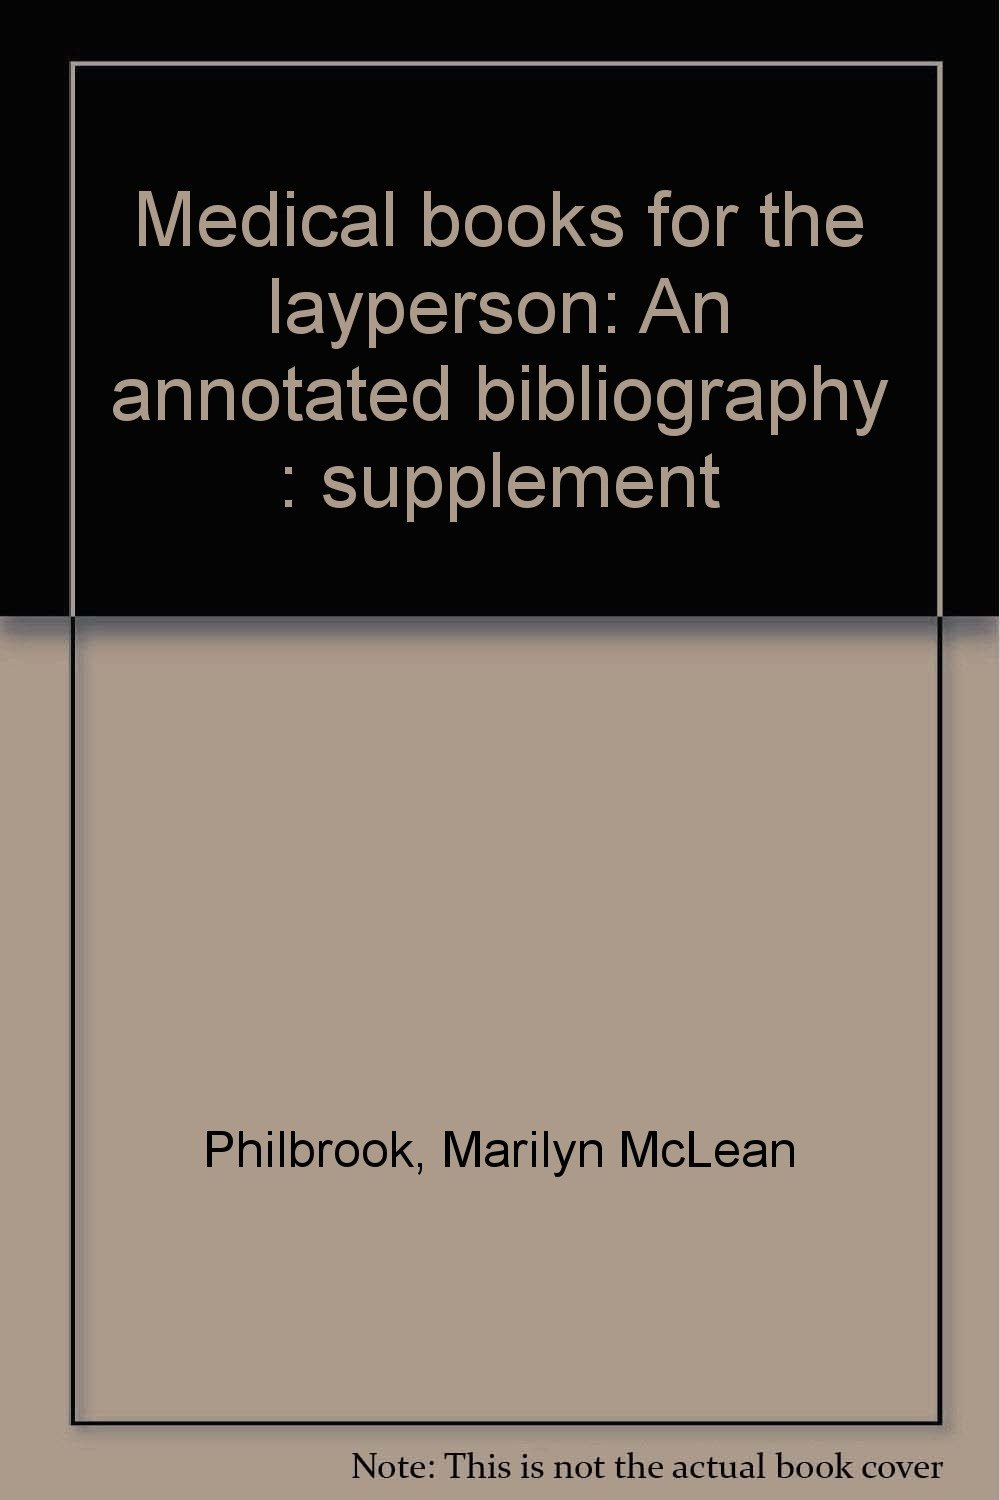 Medical books for the layperson: An annotated bibliography : supplement:  Marilyn McLean Philbrook: 9780890730607: Amazon.com: Books